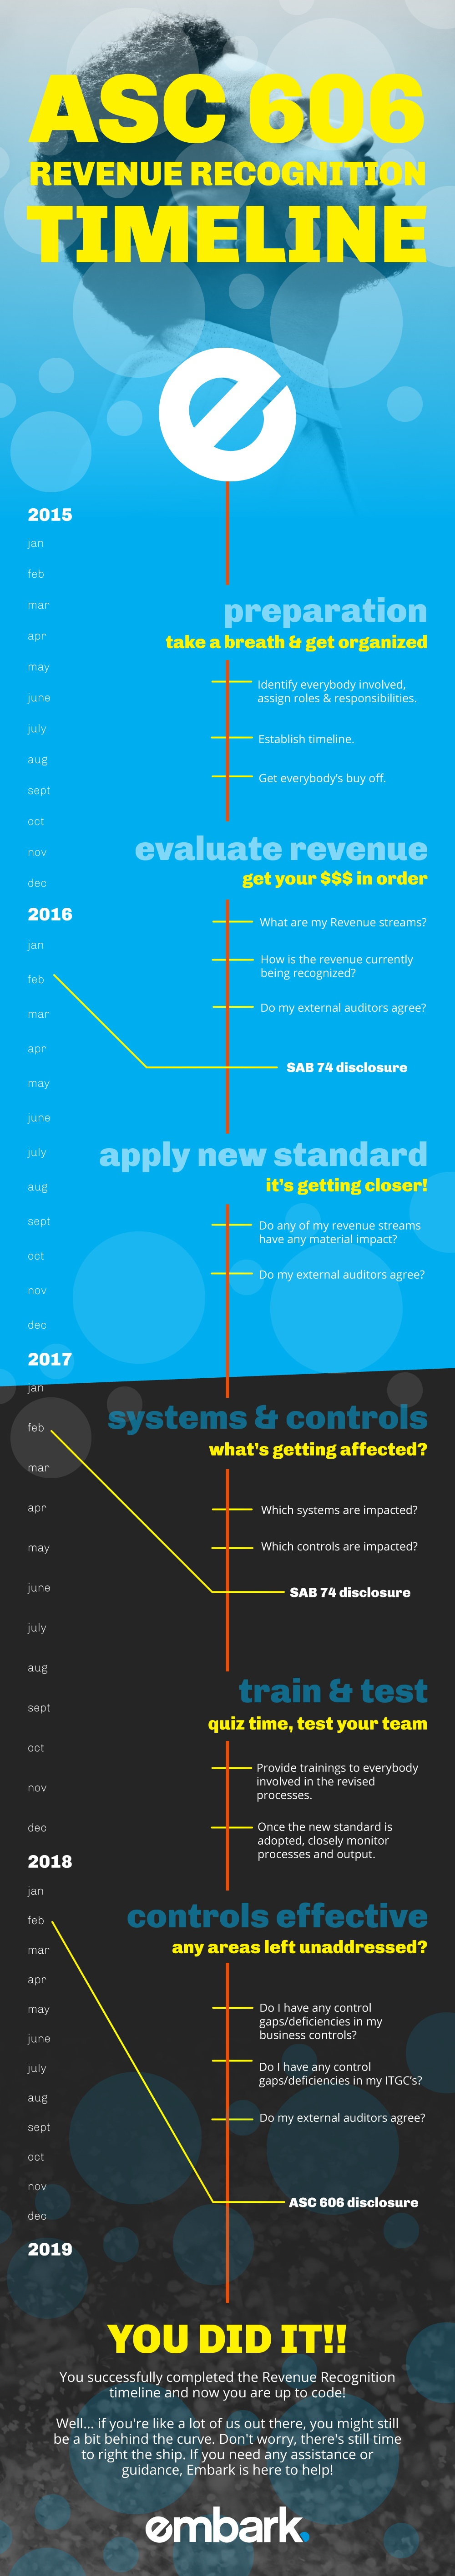 timeline-infographic-full-preview.jpg